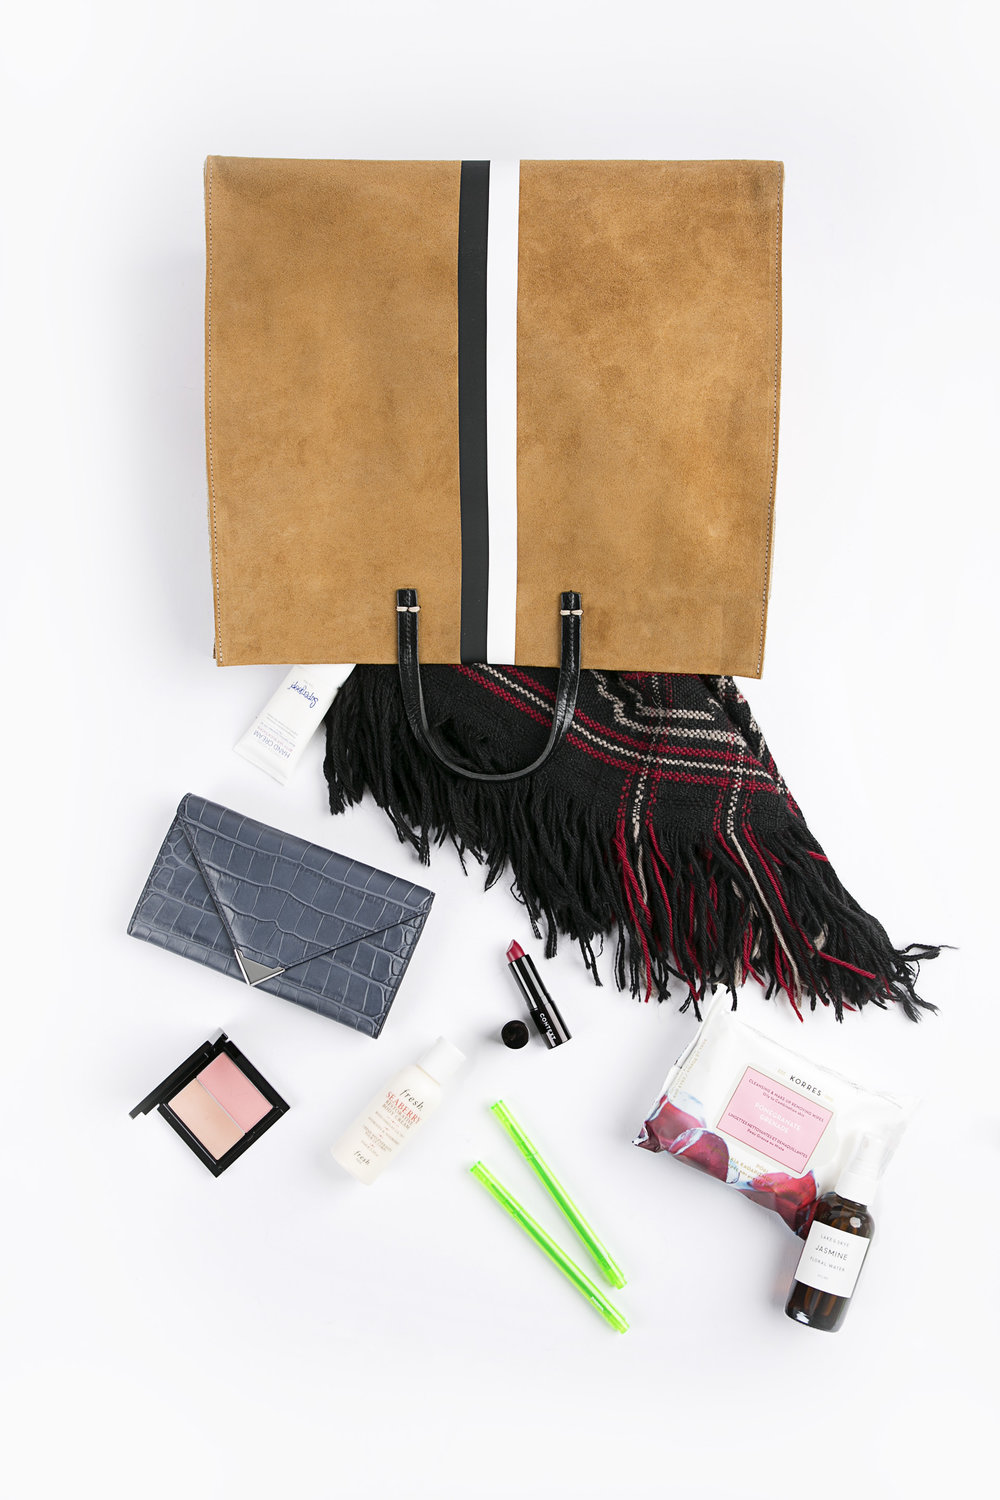 whats in your bag0592.jpg